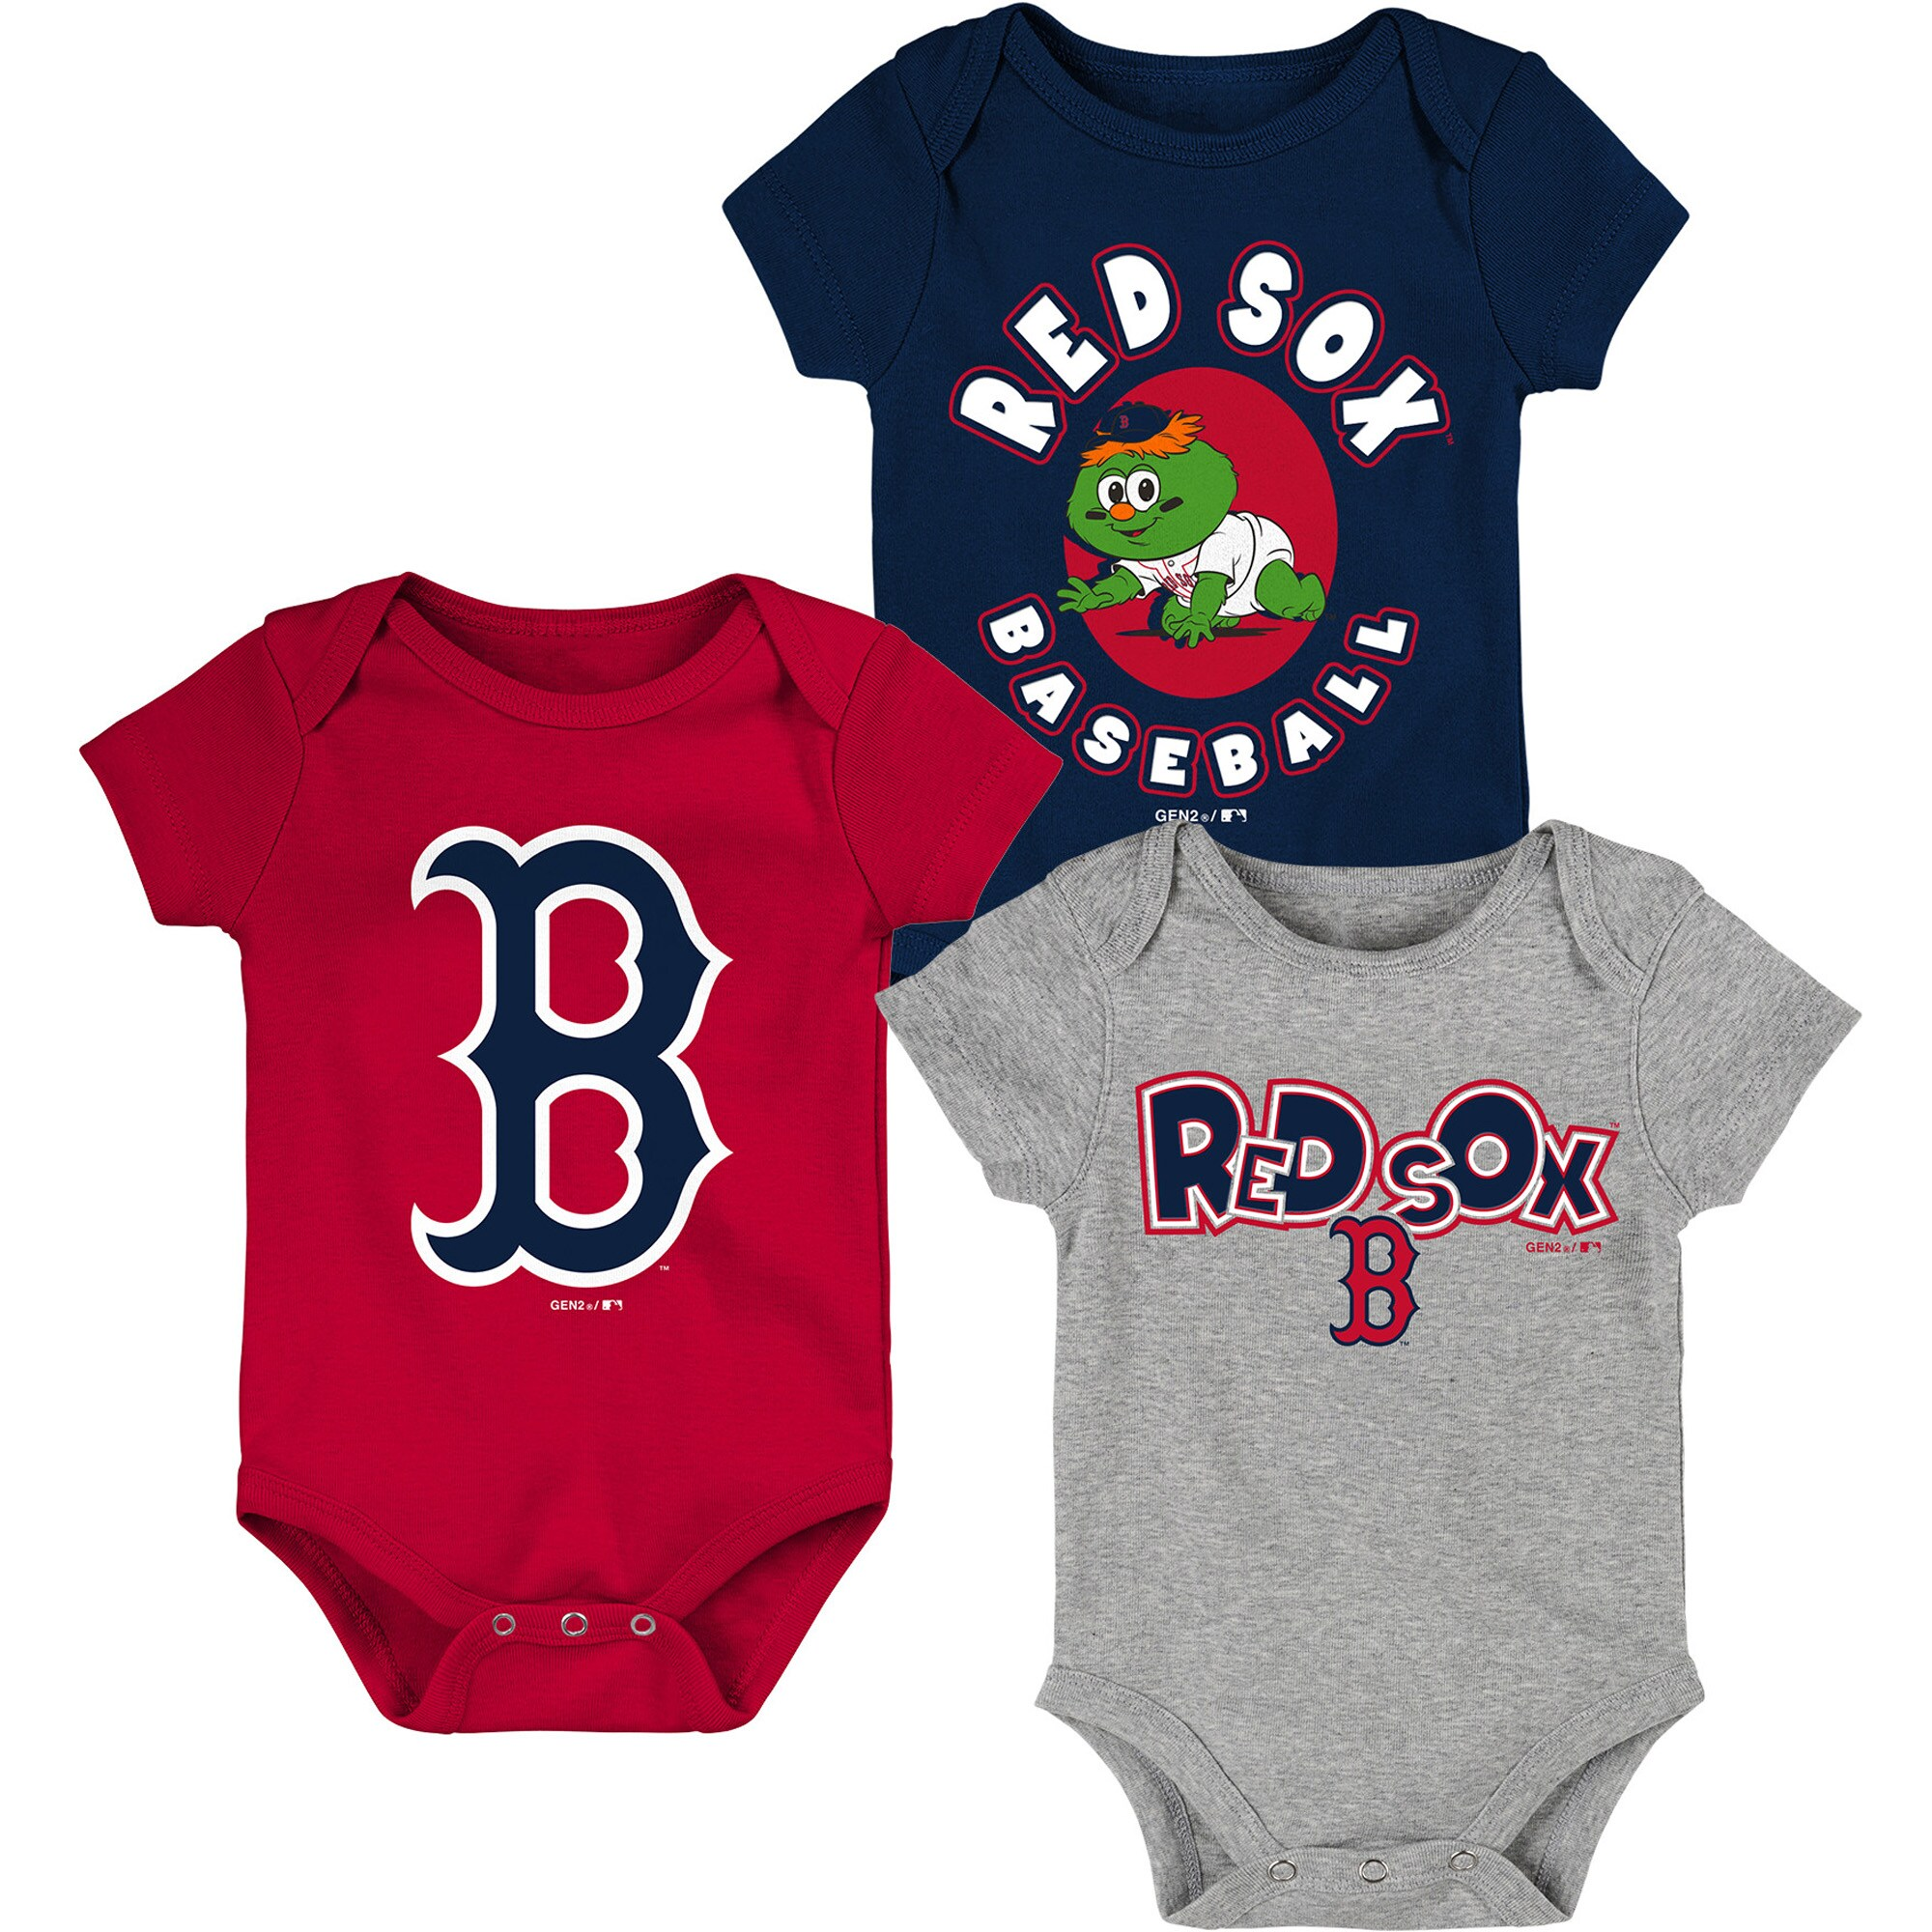 Boston Red Sox Infant Everyday Fan Three-Pack Bodysuit Set - Navy/Red/Heathered Gray